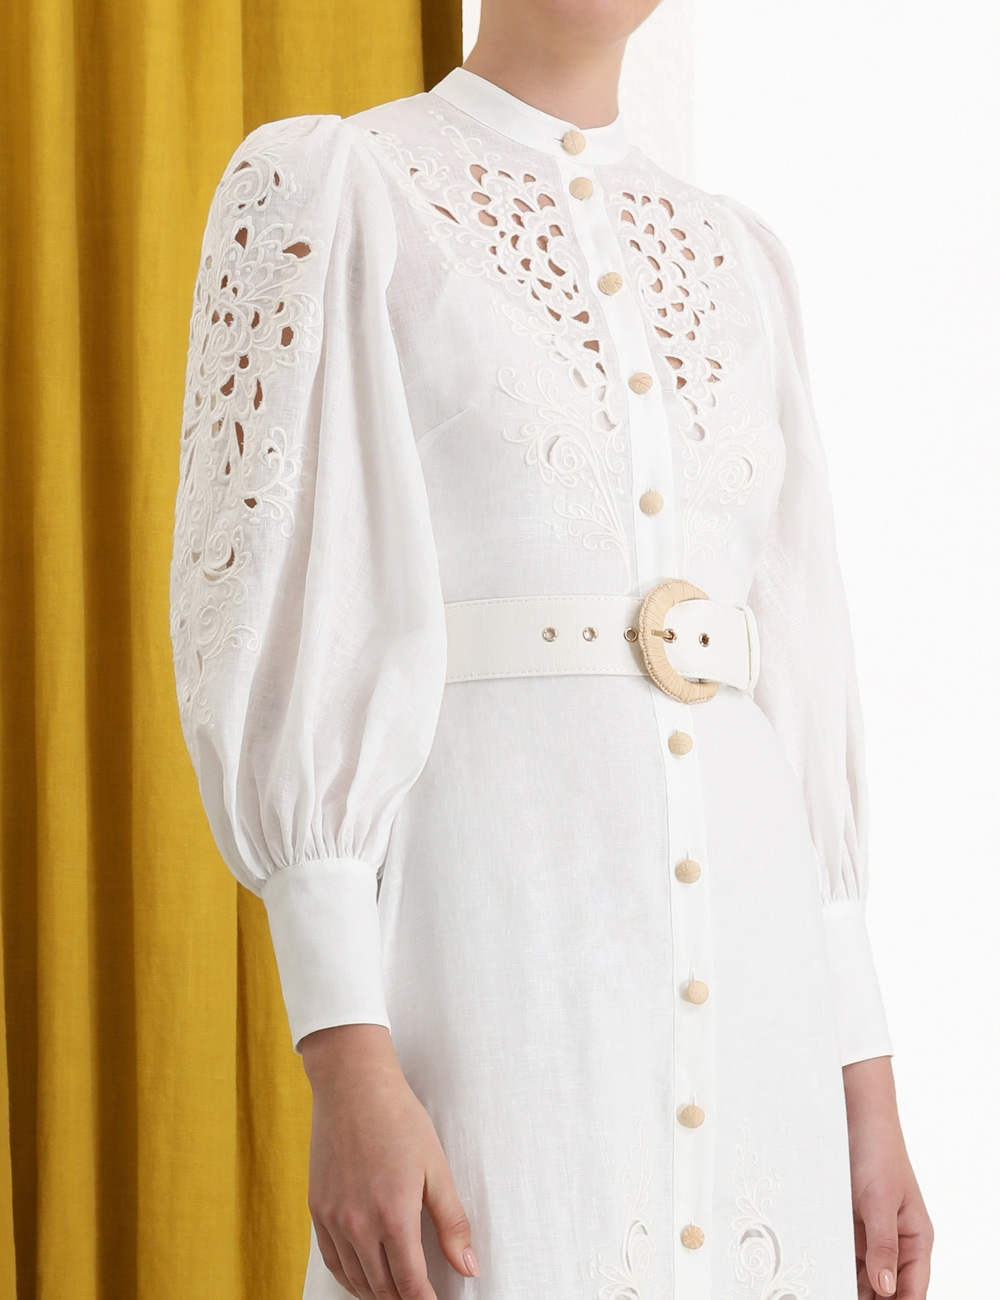 Peggy Embroidery Dress